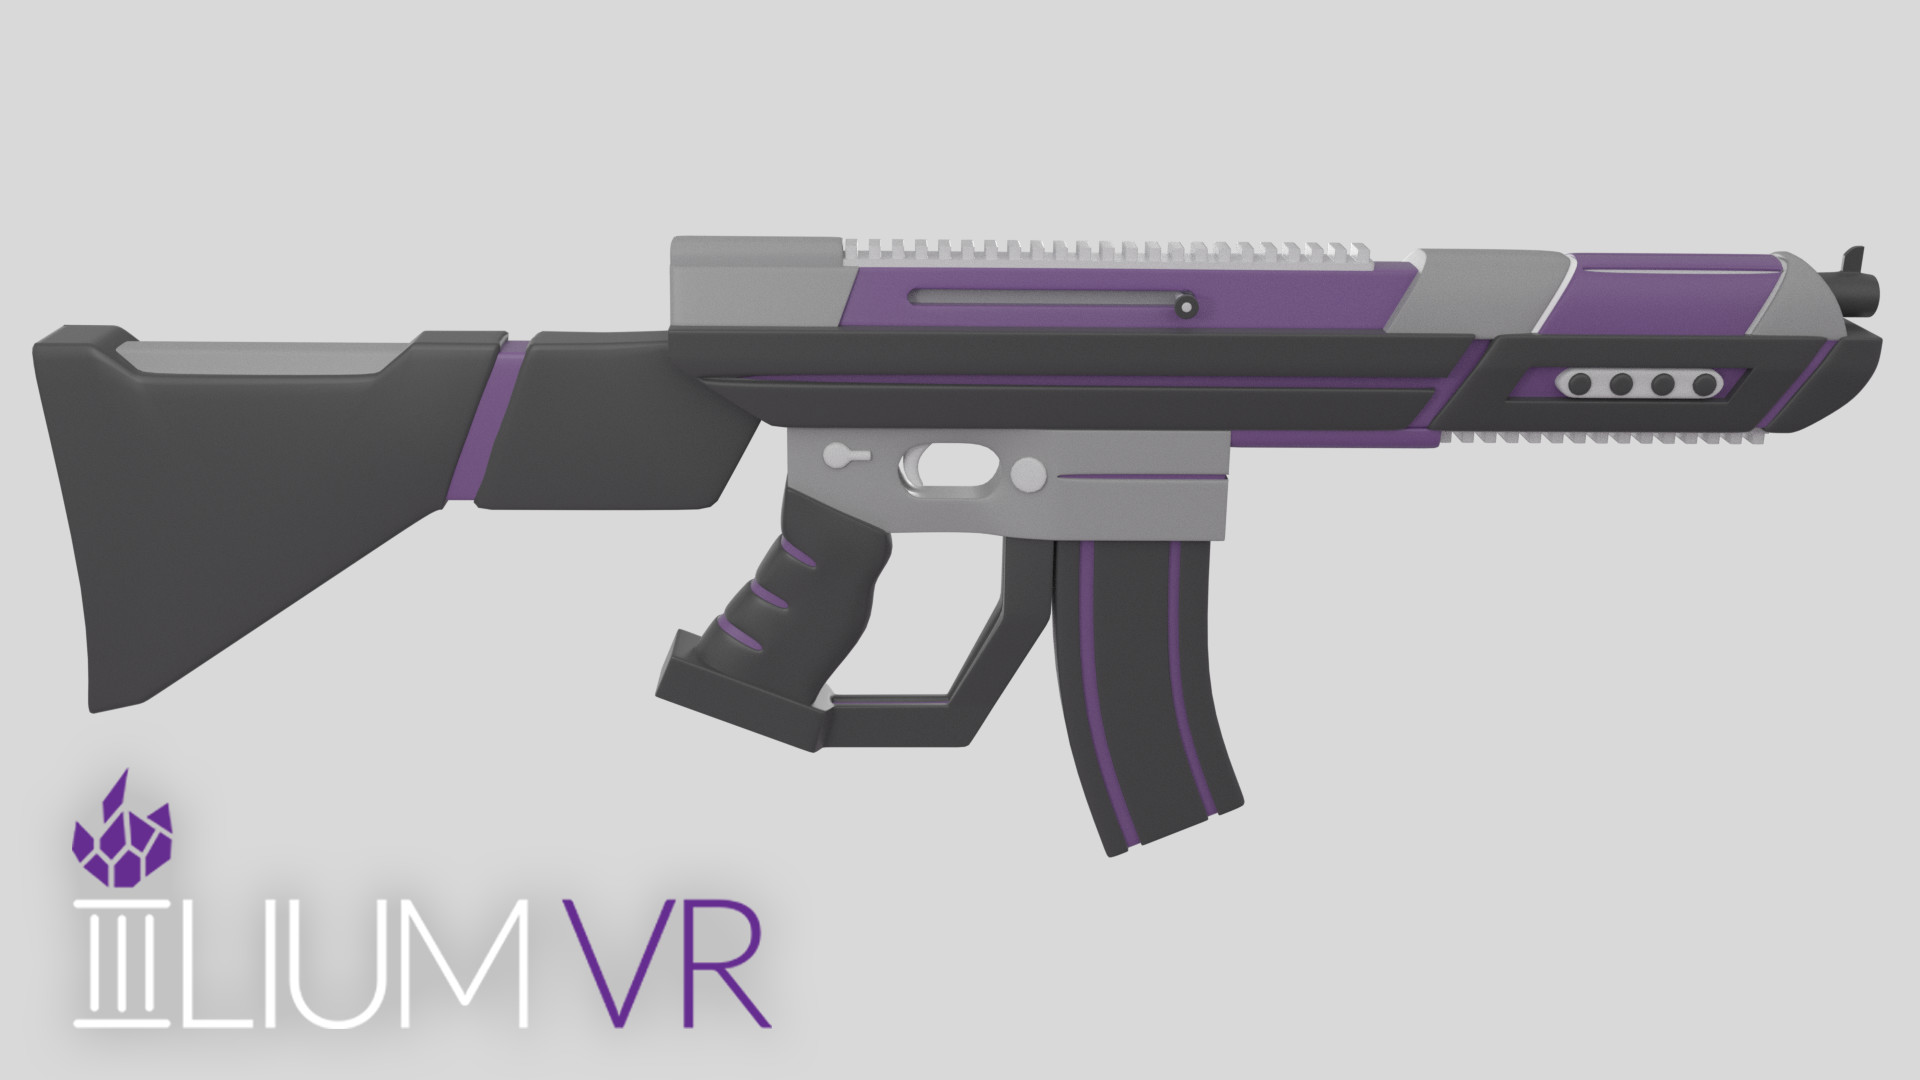 Final side render of completed rifle model